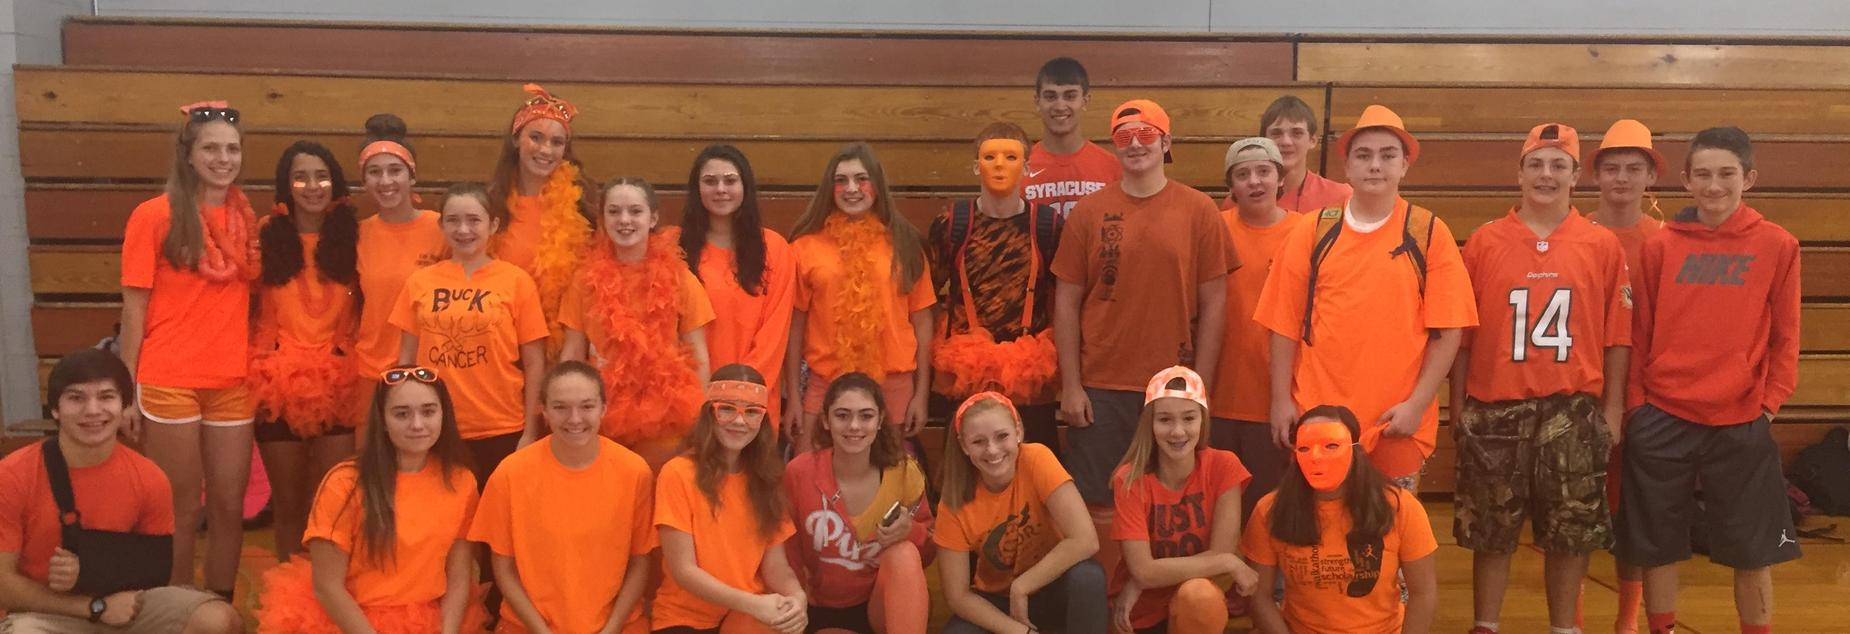 Sophomores during Spirit Week, 2017- group picture